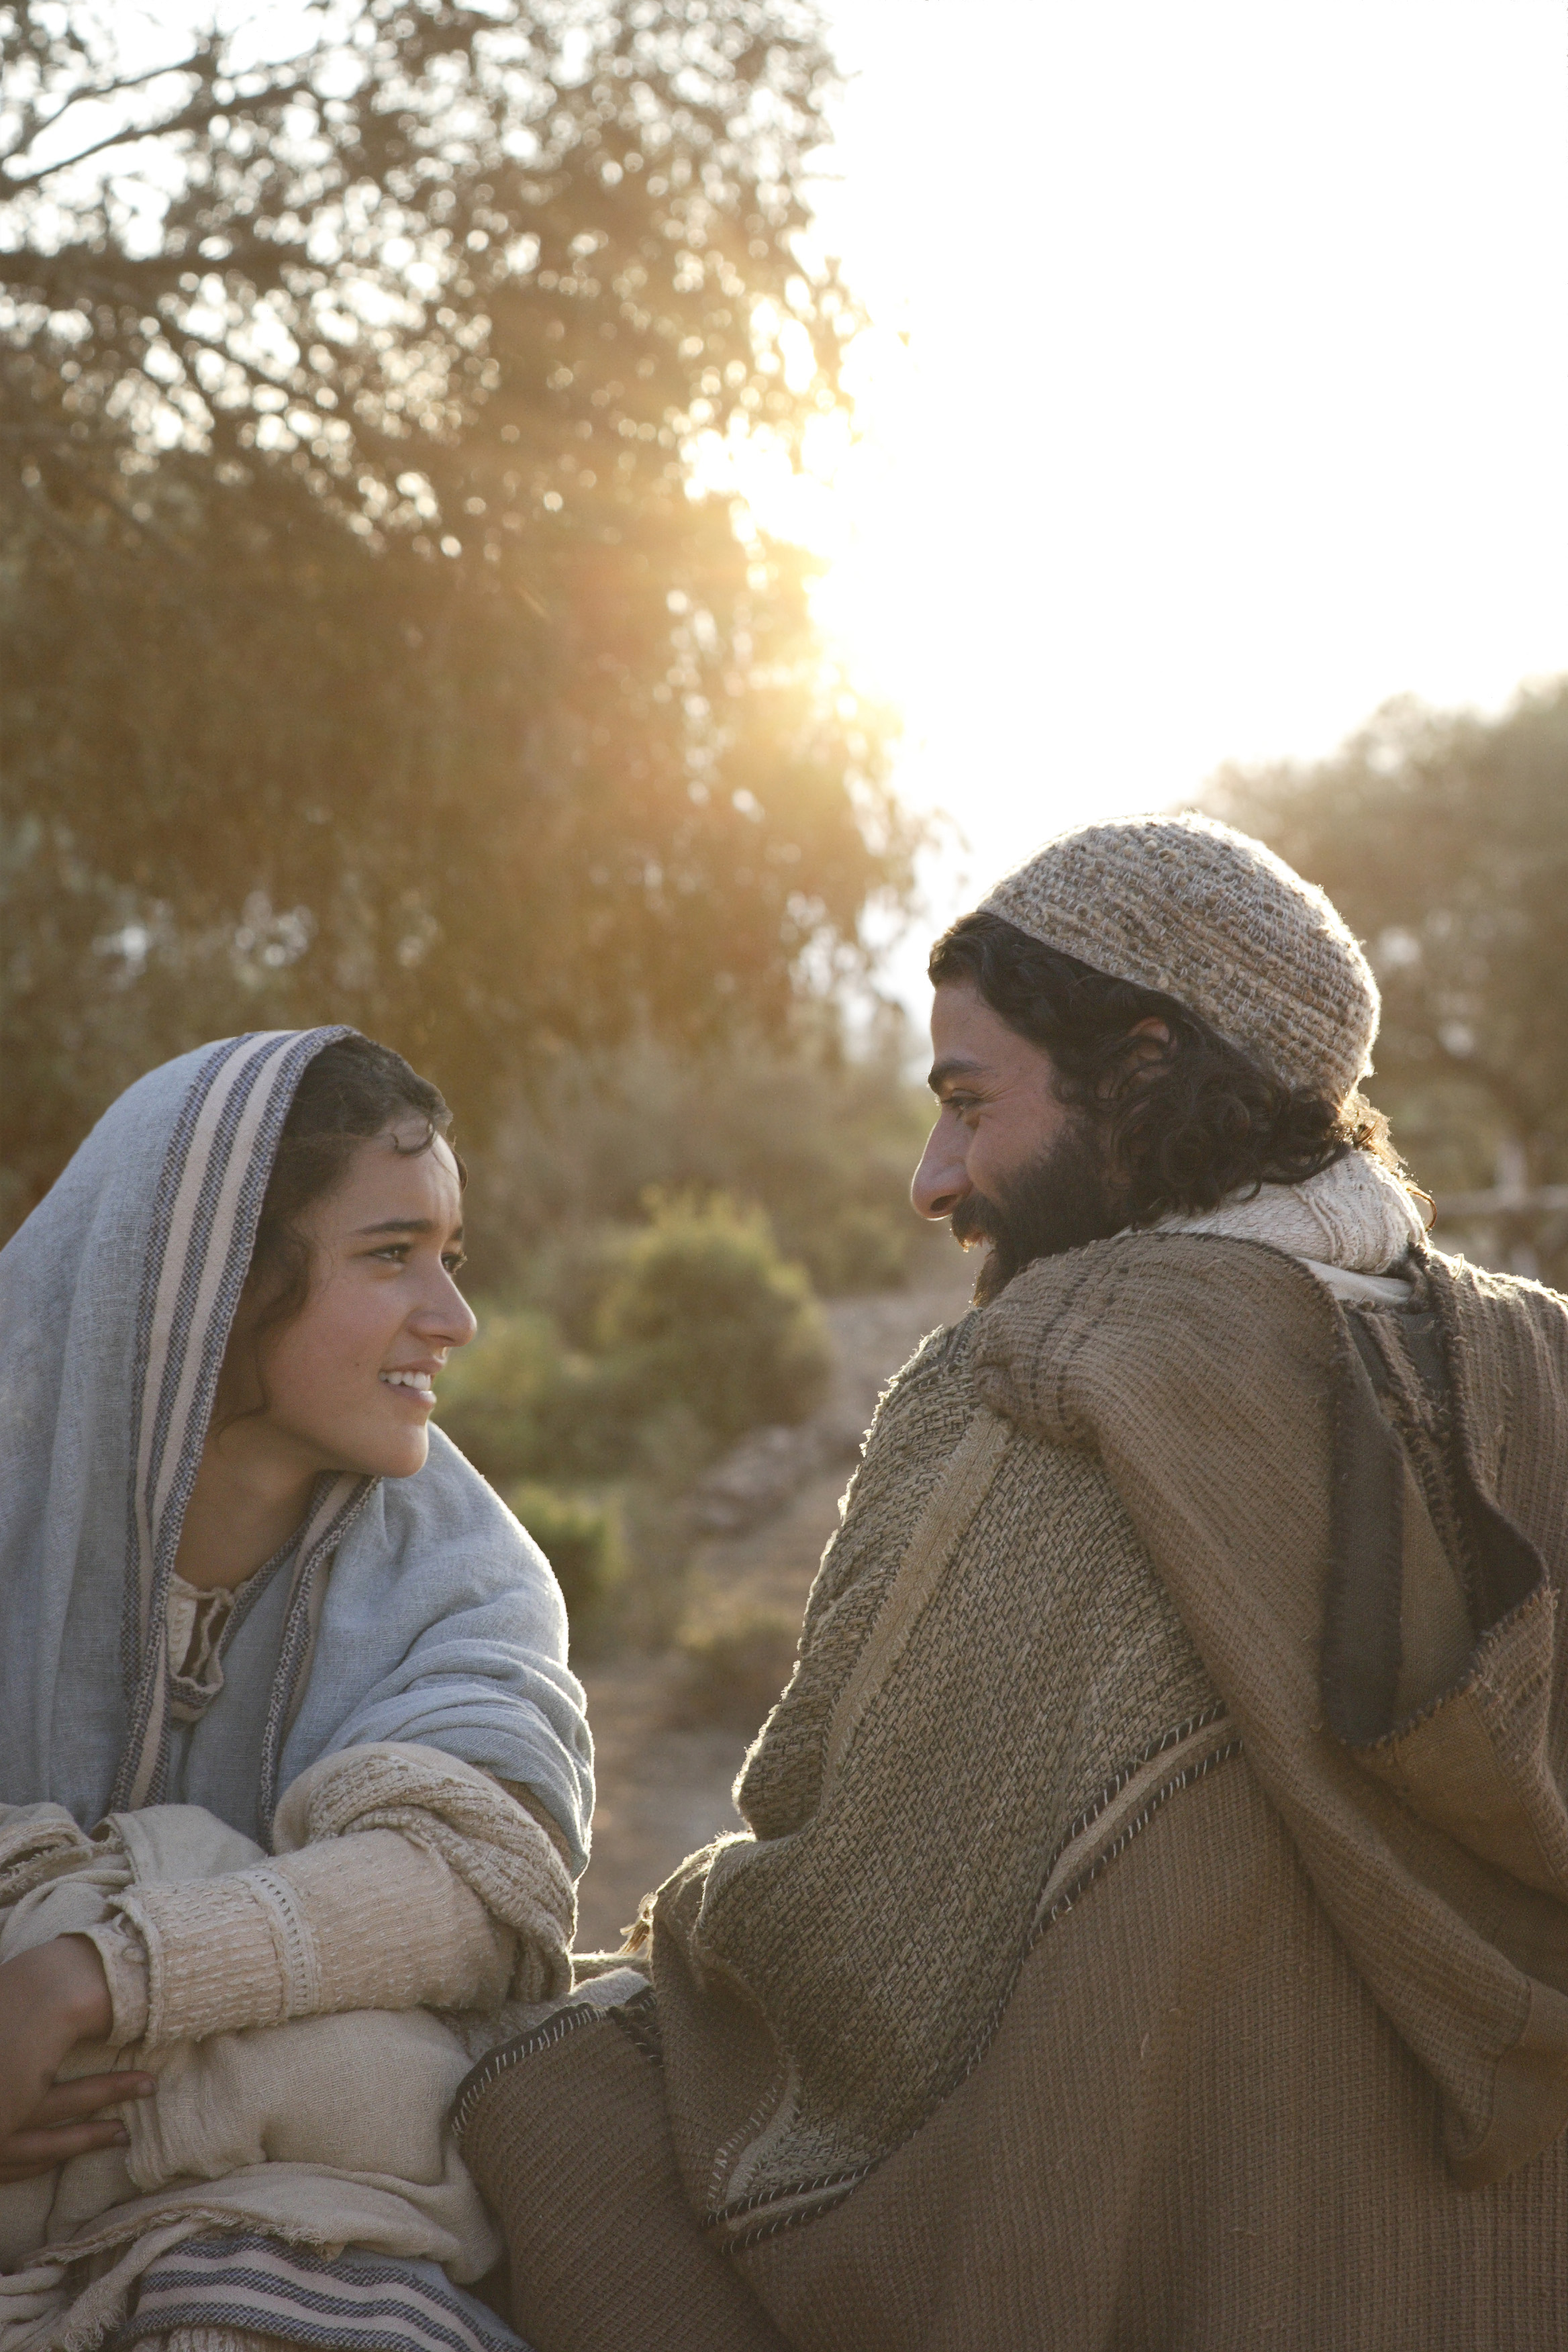 2006 the nativity story 024 as well The Nativity Story 2006 in addition Highest Grossing Christian Movies Ben Hur Passion Of The Christ in addition Christmas Prayers besides The Nativity Story Trailer 1739. on oscar isaac the nativity story